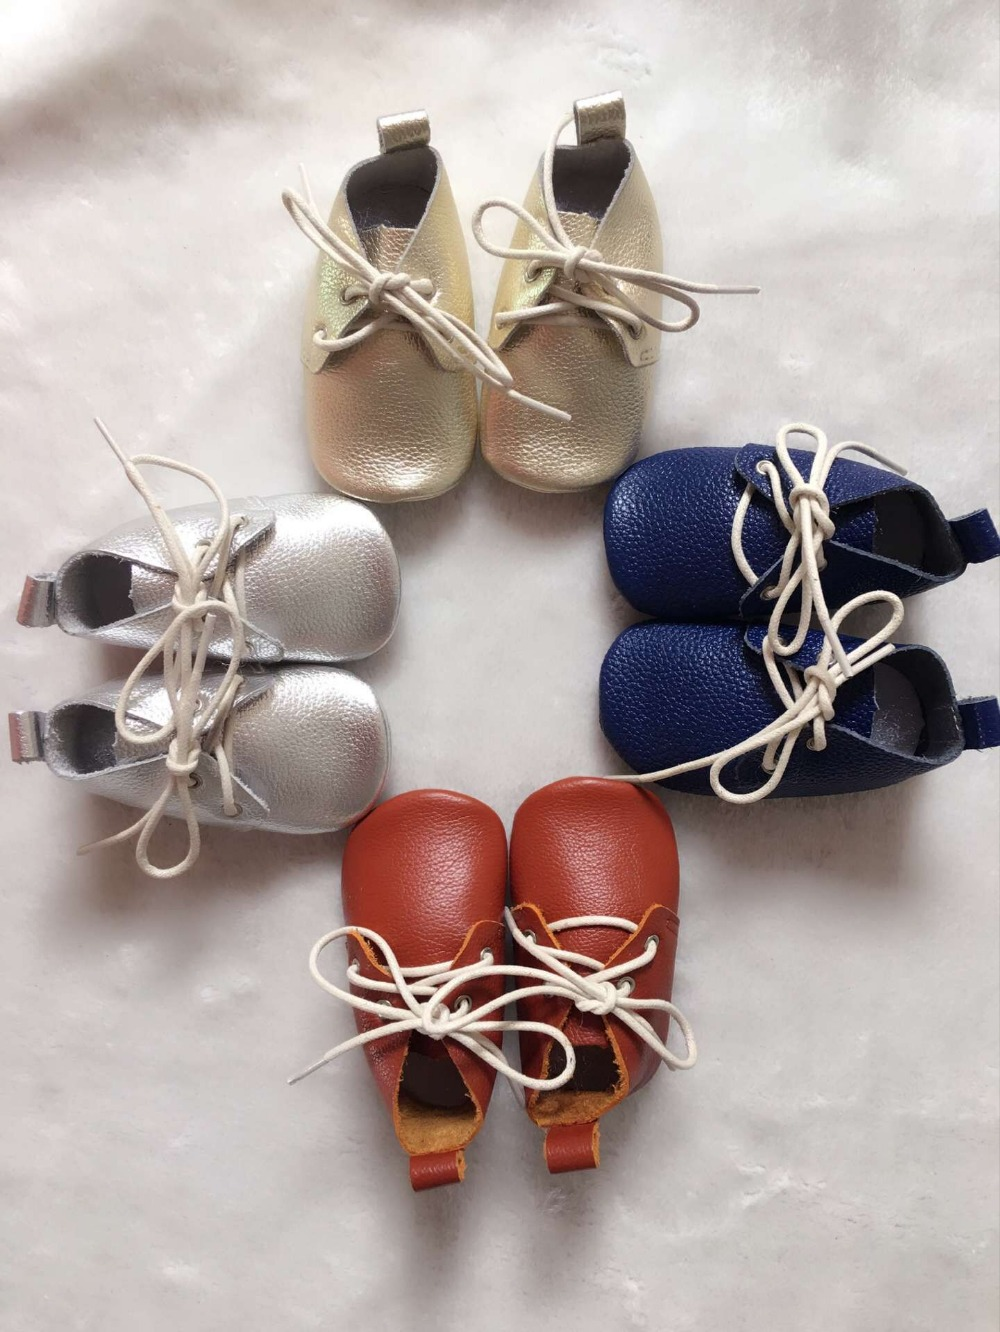 New solid Genuine Leather Baby Moccasins Shoes lace up Baby Shoes soft sole Newborn oxford first walkers Infant baby boot